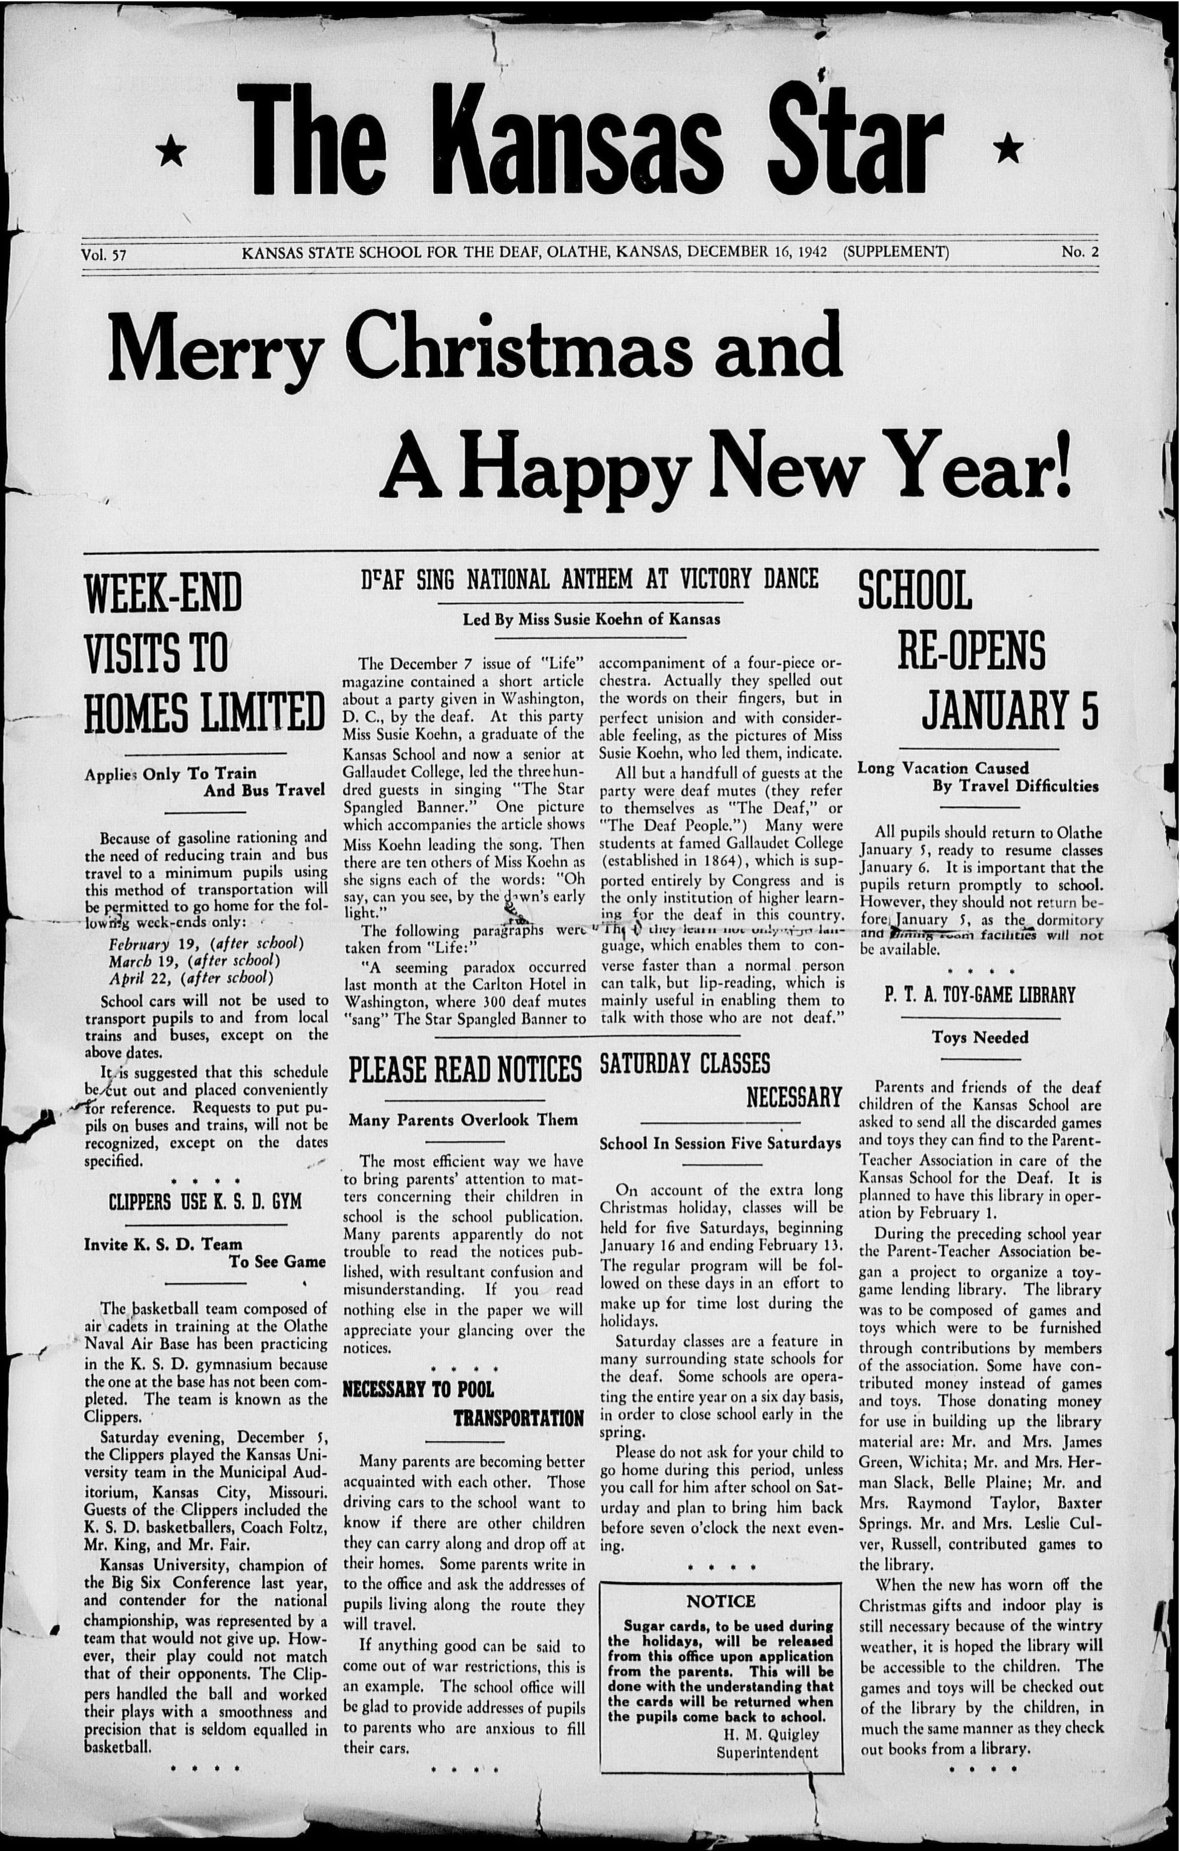 The Kansas Star, volume 57, number 2 - Front cover